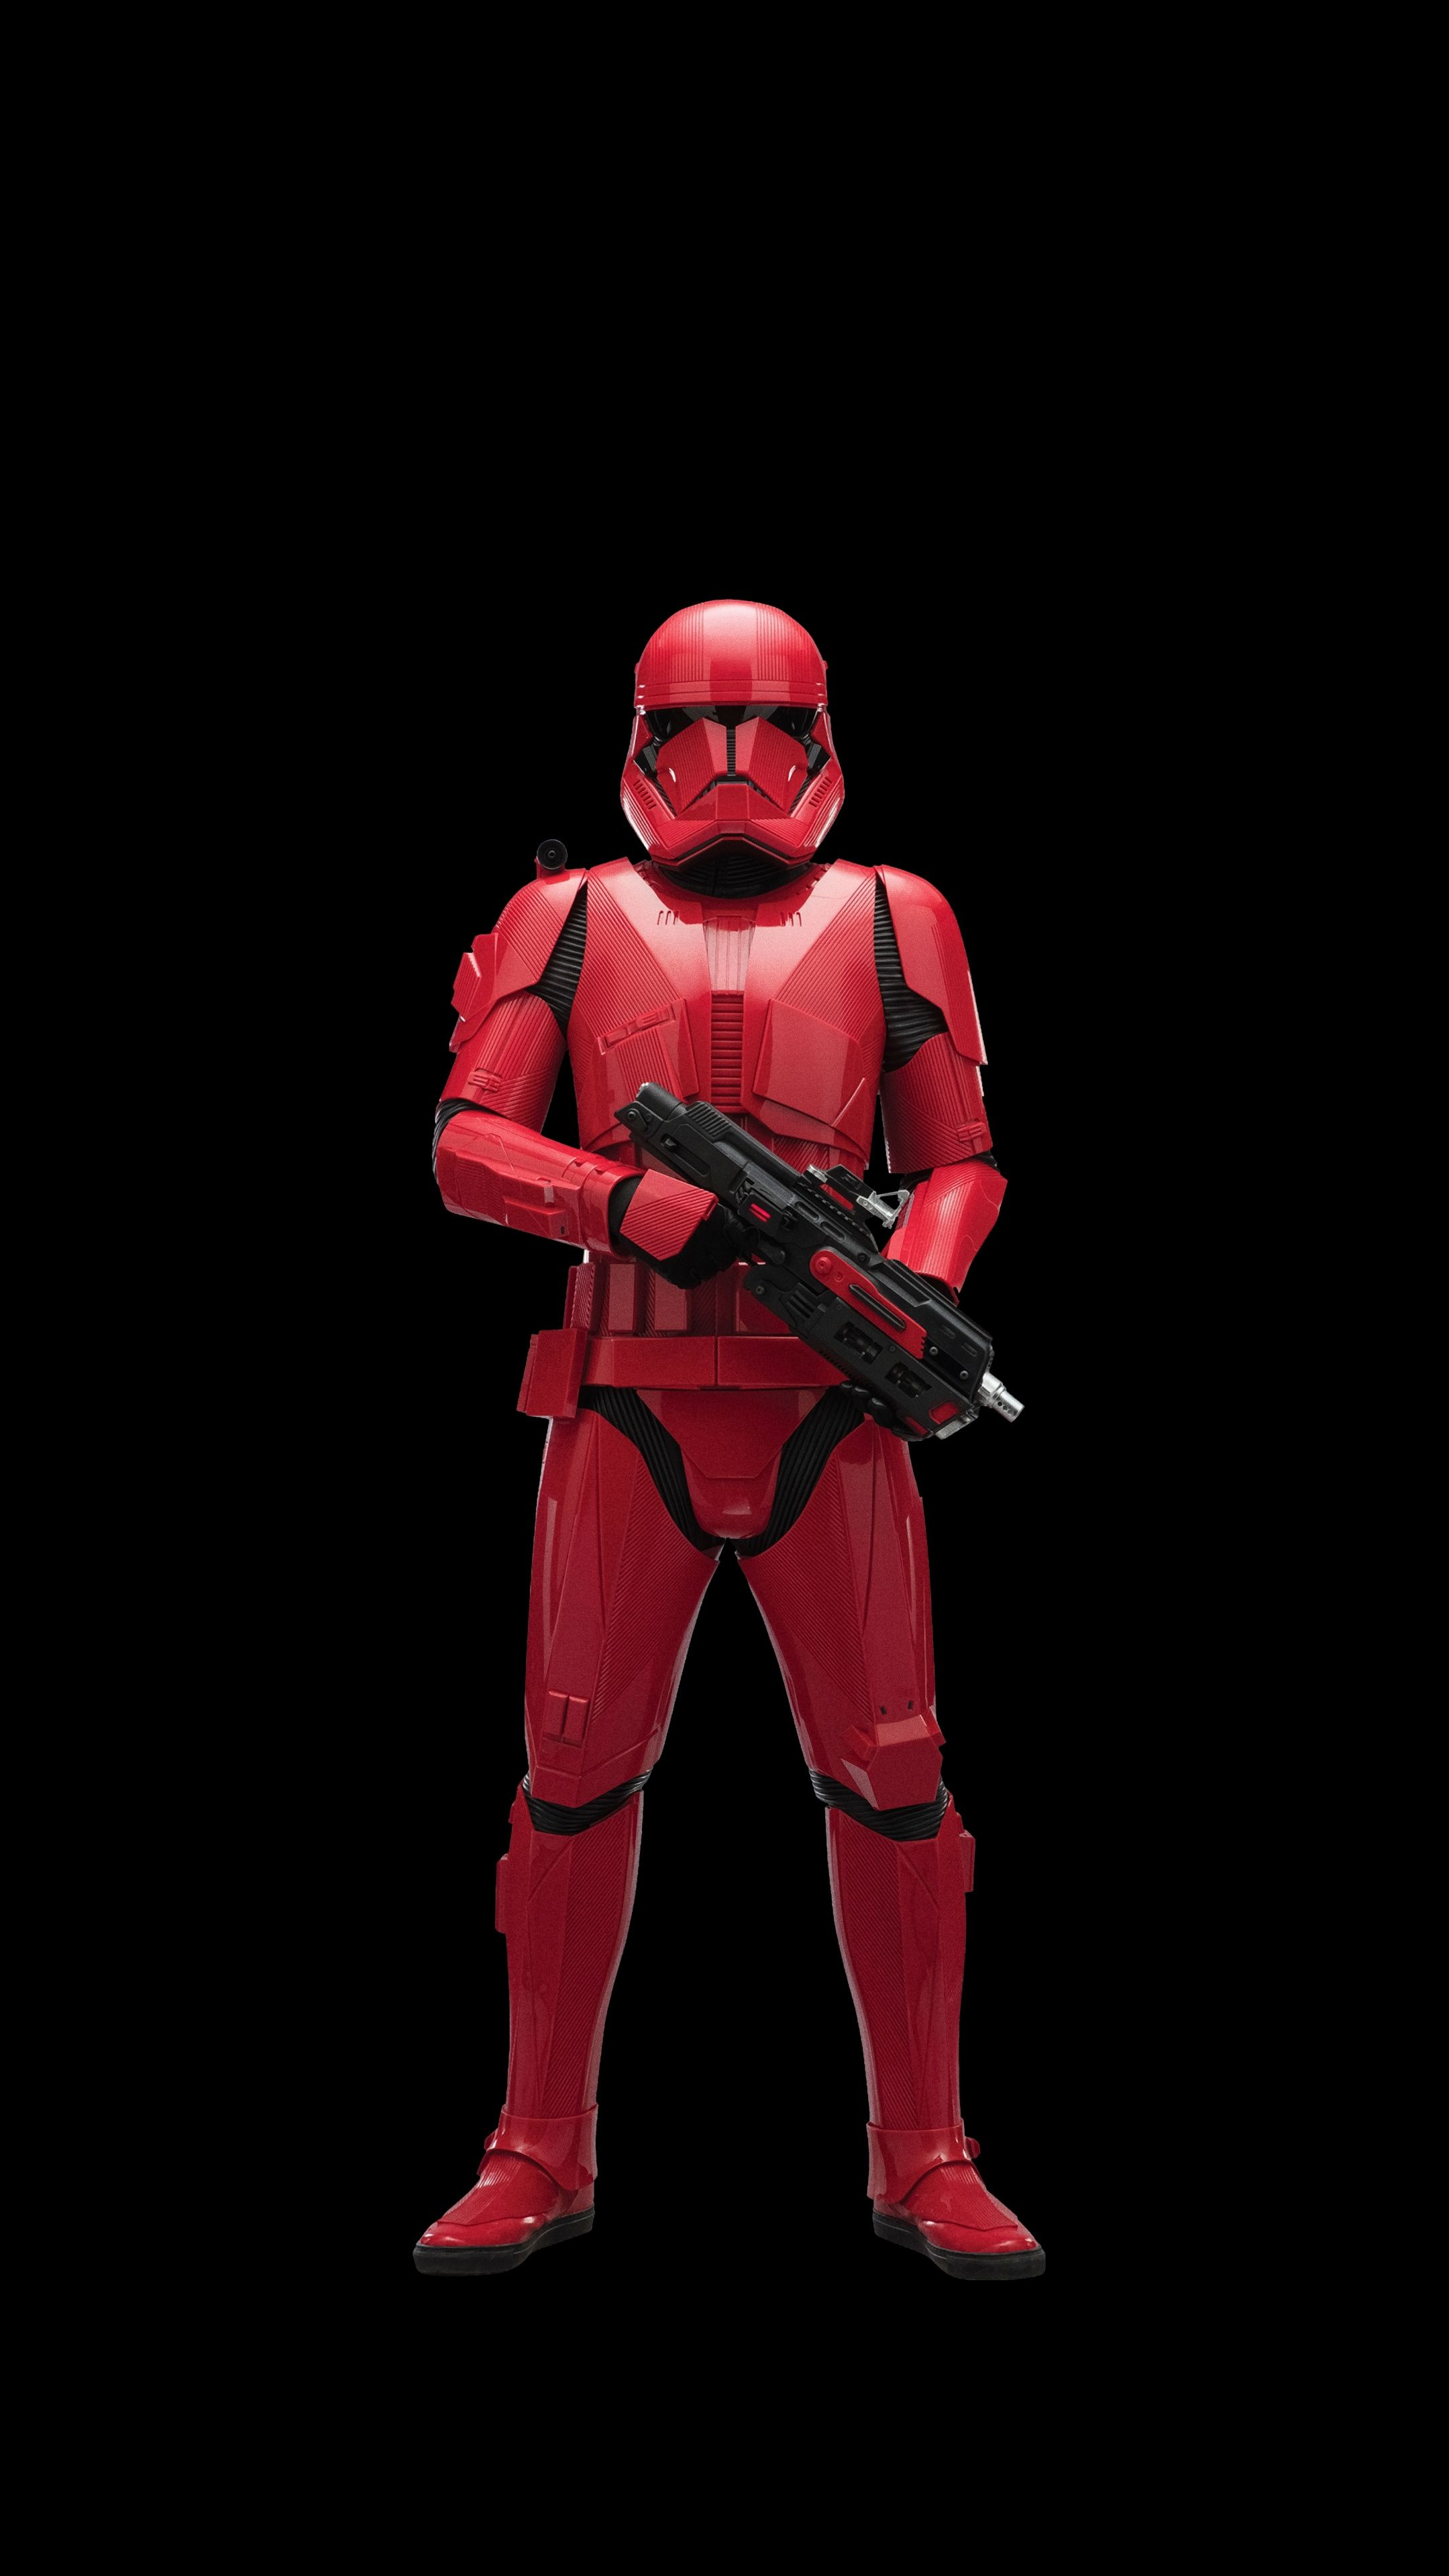 2160x3840 Star Wars The Rise of Skywalker, Sith Trooper